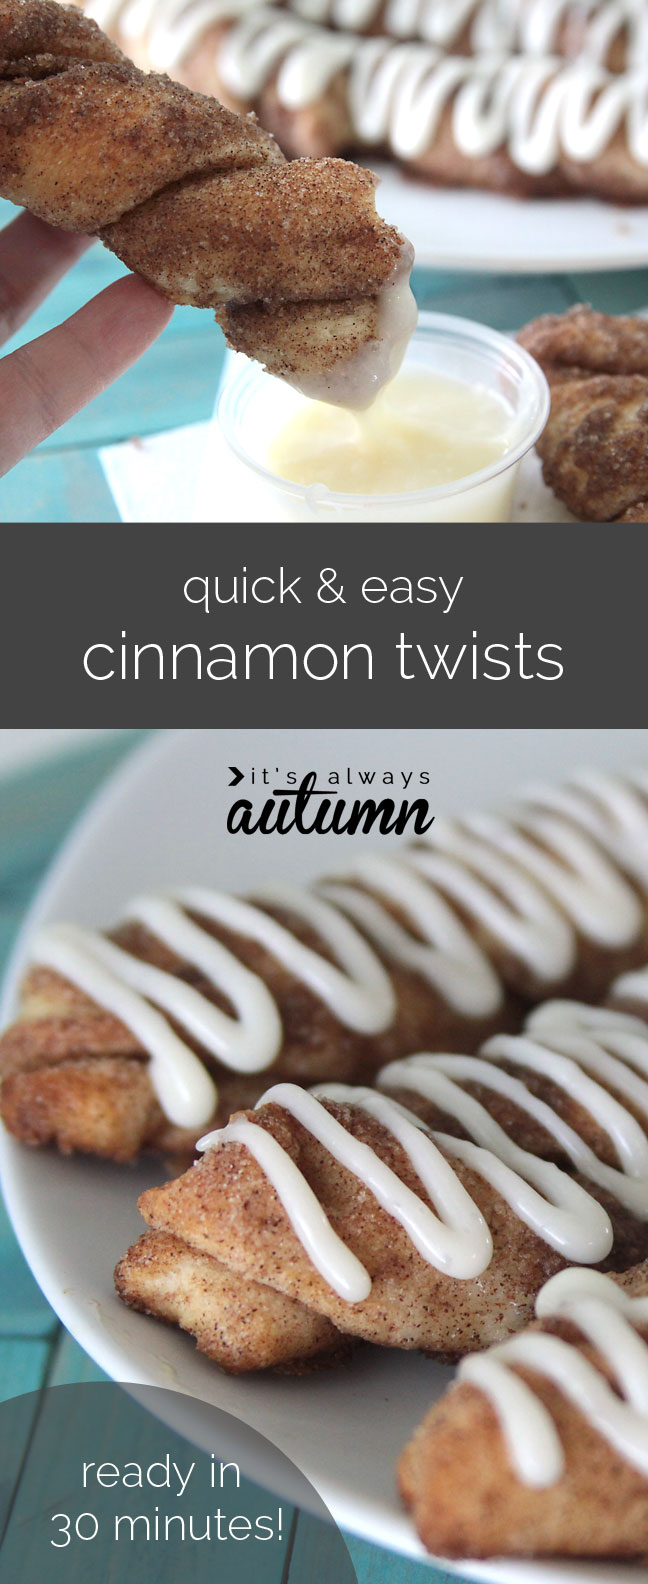 super easy cinnamon twists are ready in just 30 minutes! great recipe